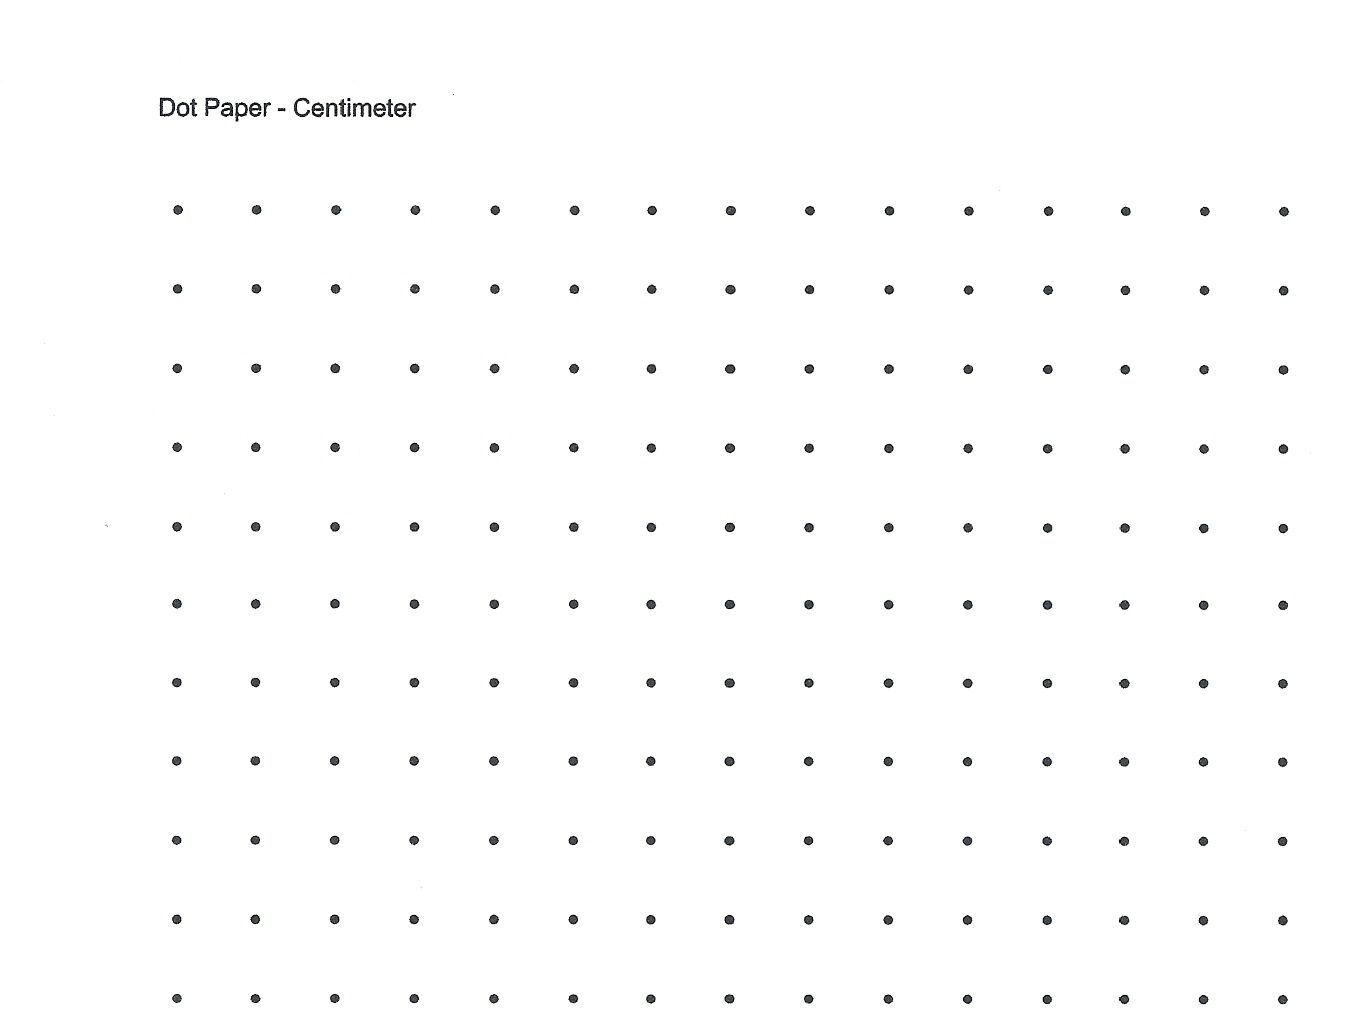 Free Printable Cetameter Dot Grid | Centimeter Dot Graph Paper For - Free Printable Square Dot Paper